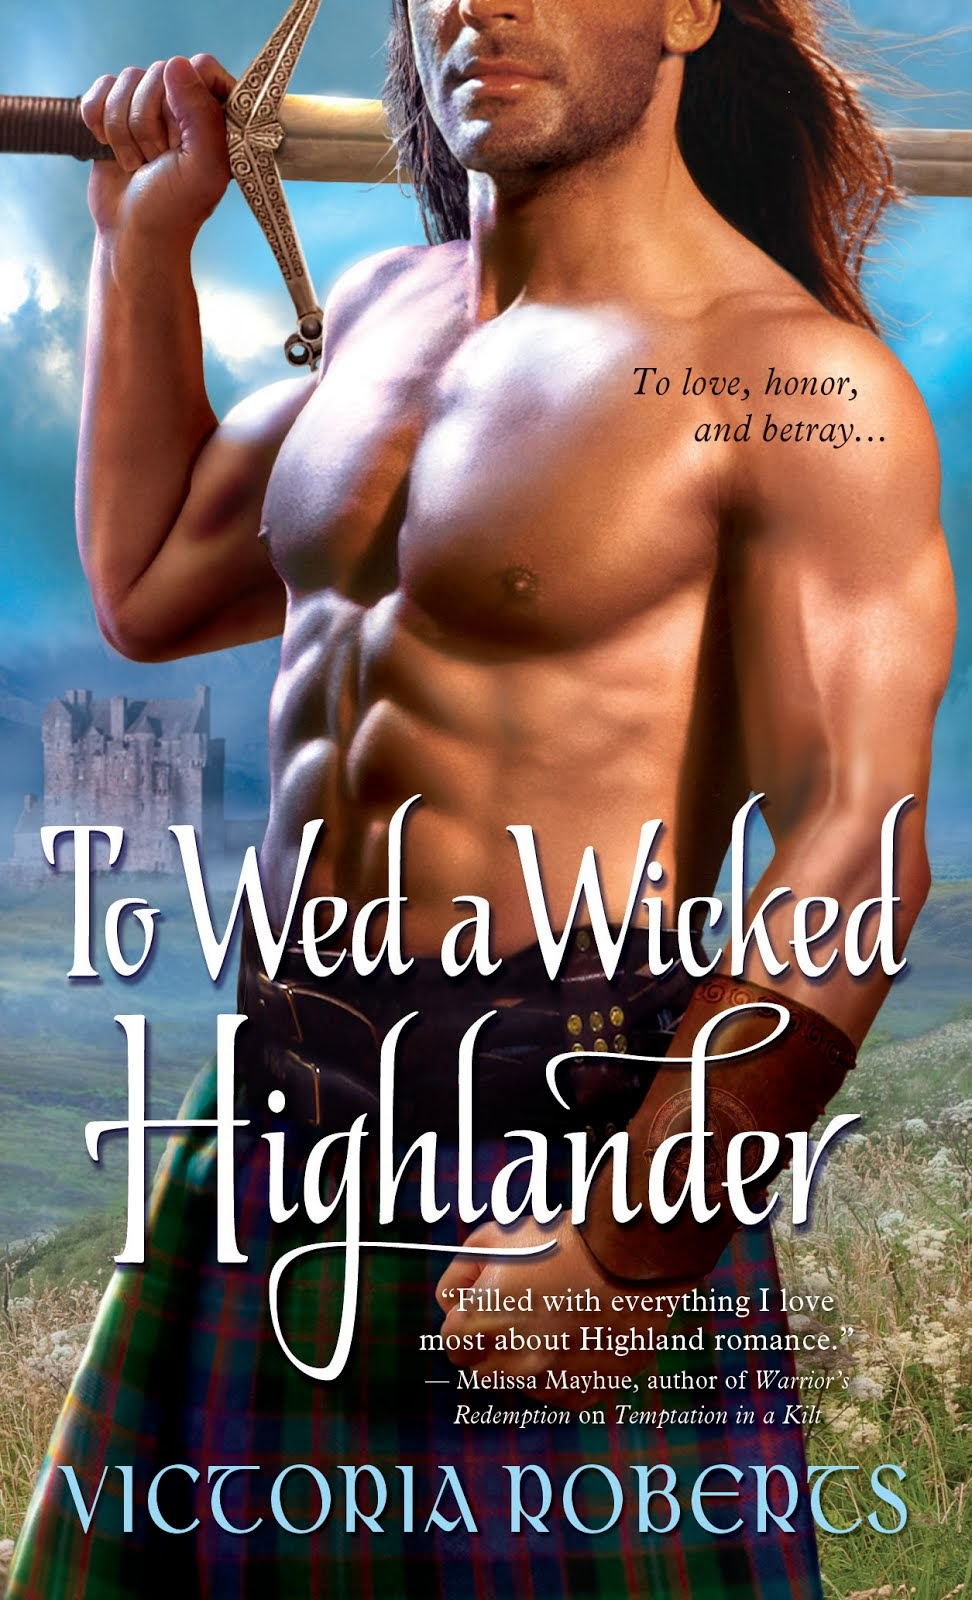 To Wed a Wicked Highlander ~ Reviewer TOP PICK, Book #3 of Bad Boys of the Highlands